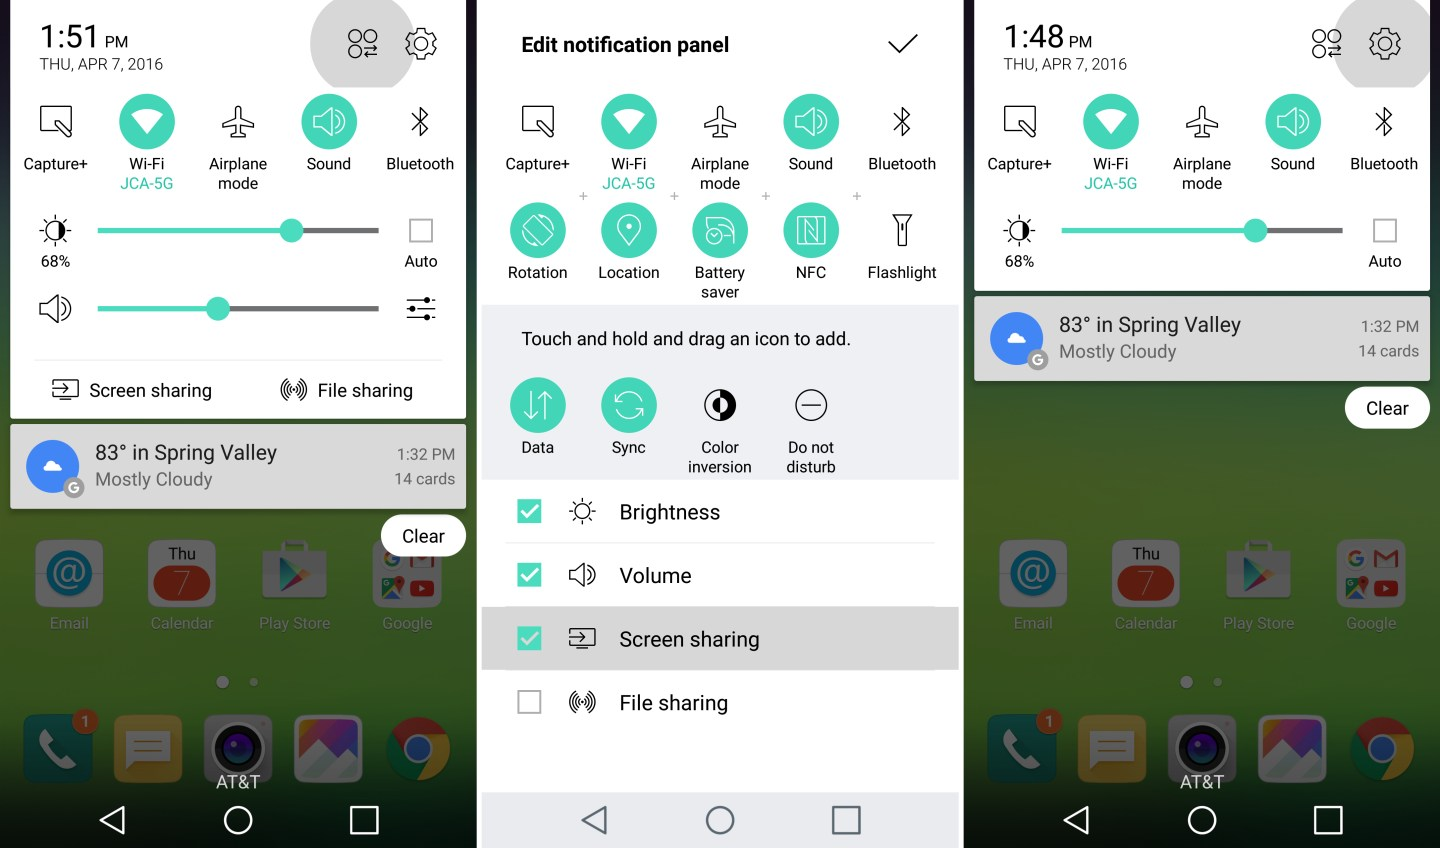 Restore Volume Icon On Bar : Common lg g problems and how to fix them